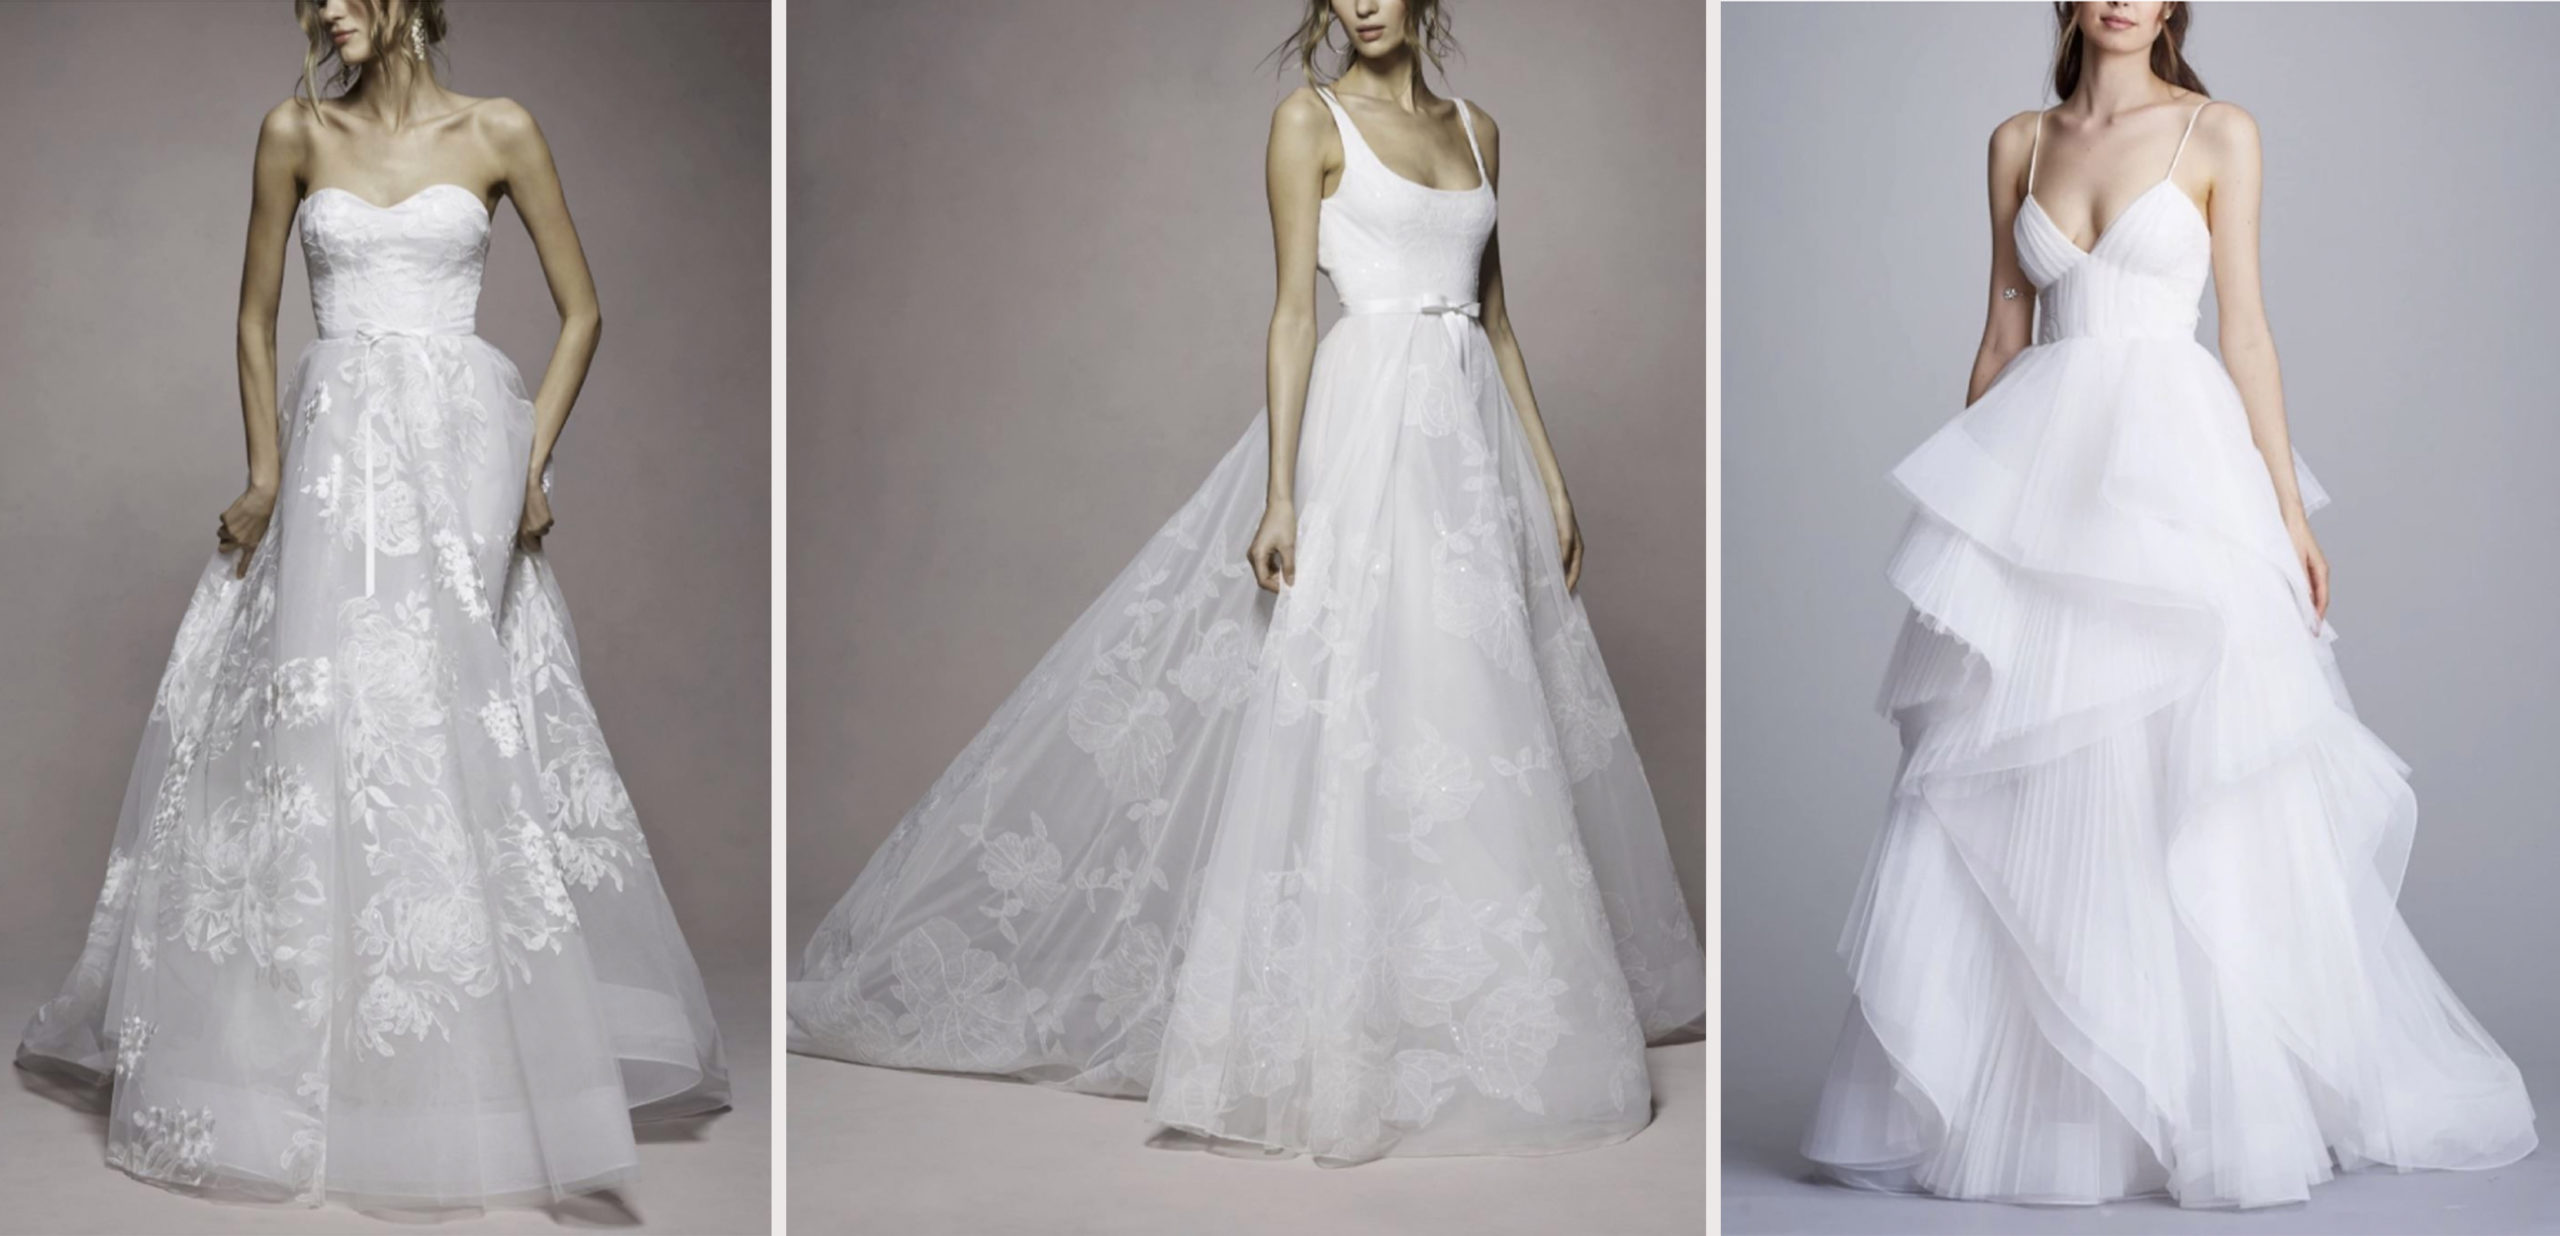 Gowns by Marchesa Notte